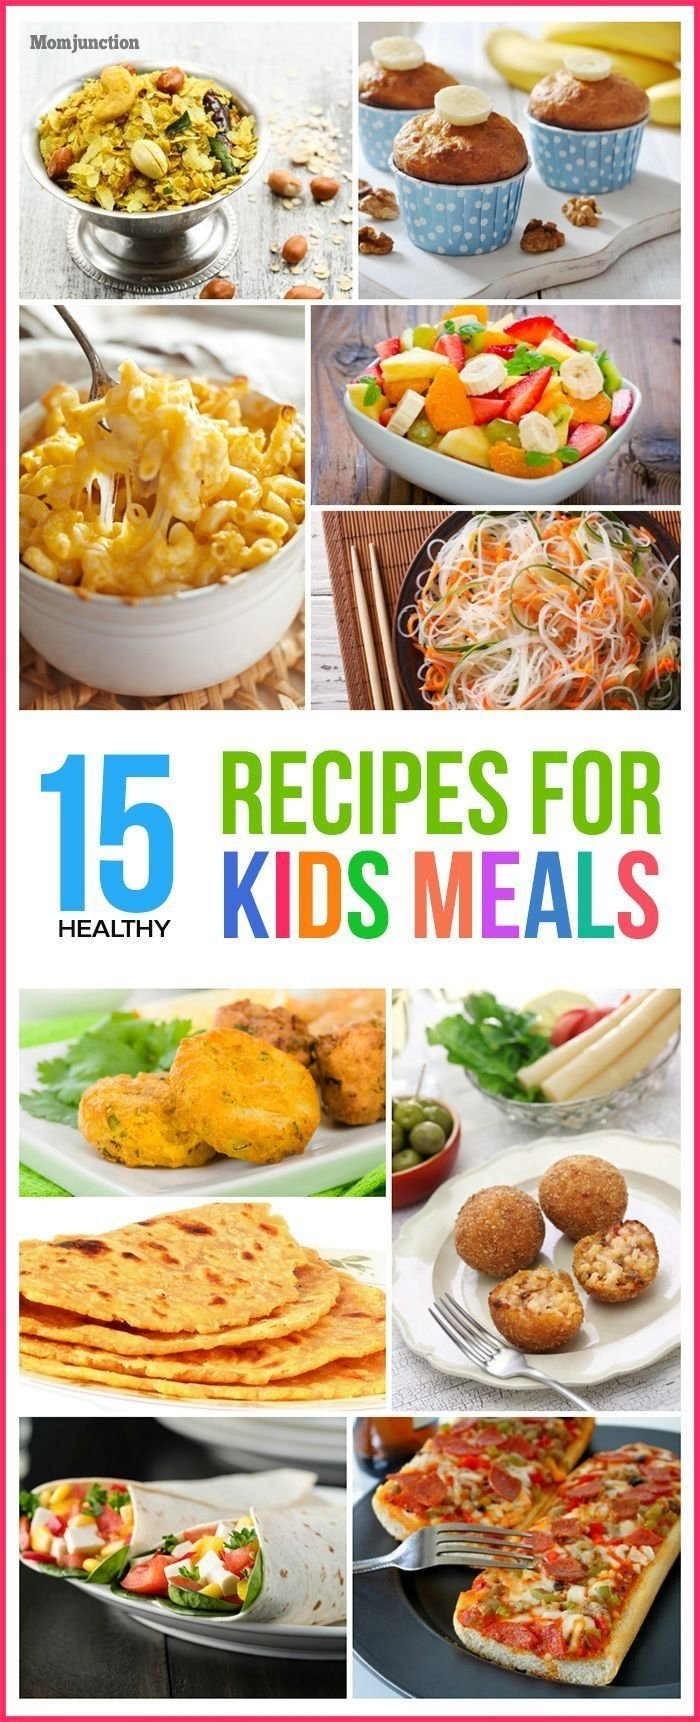 10 Fantastic Healthy Dinner Ideas For Kids top 15 healthy recipes for kids meals kid check picky eaters and 1 2020